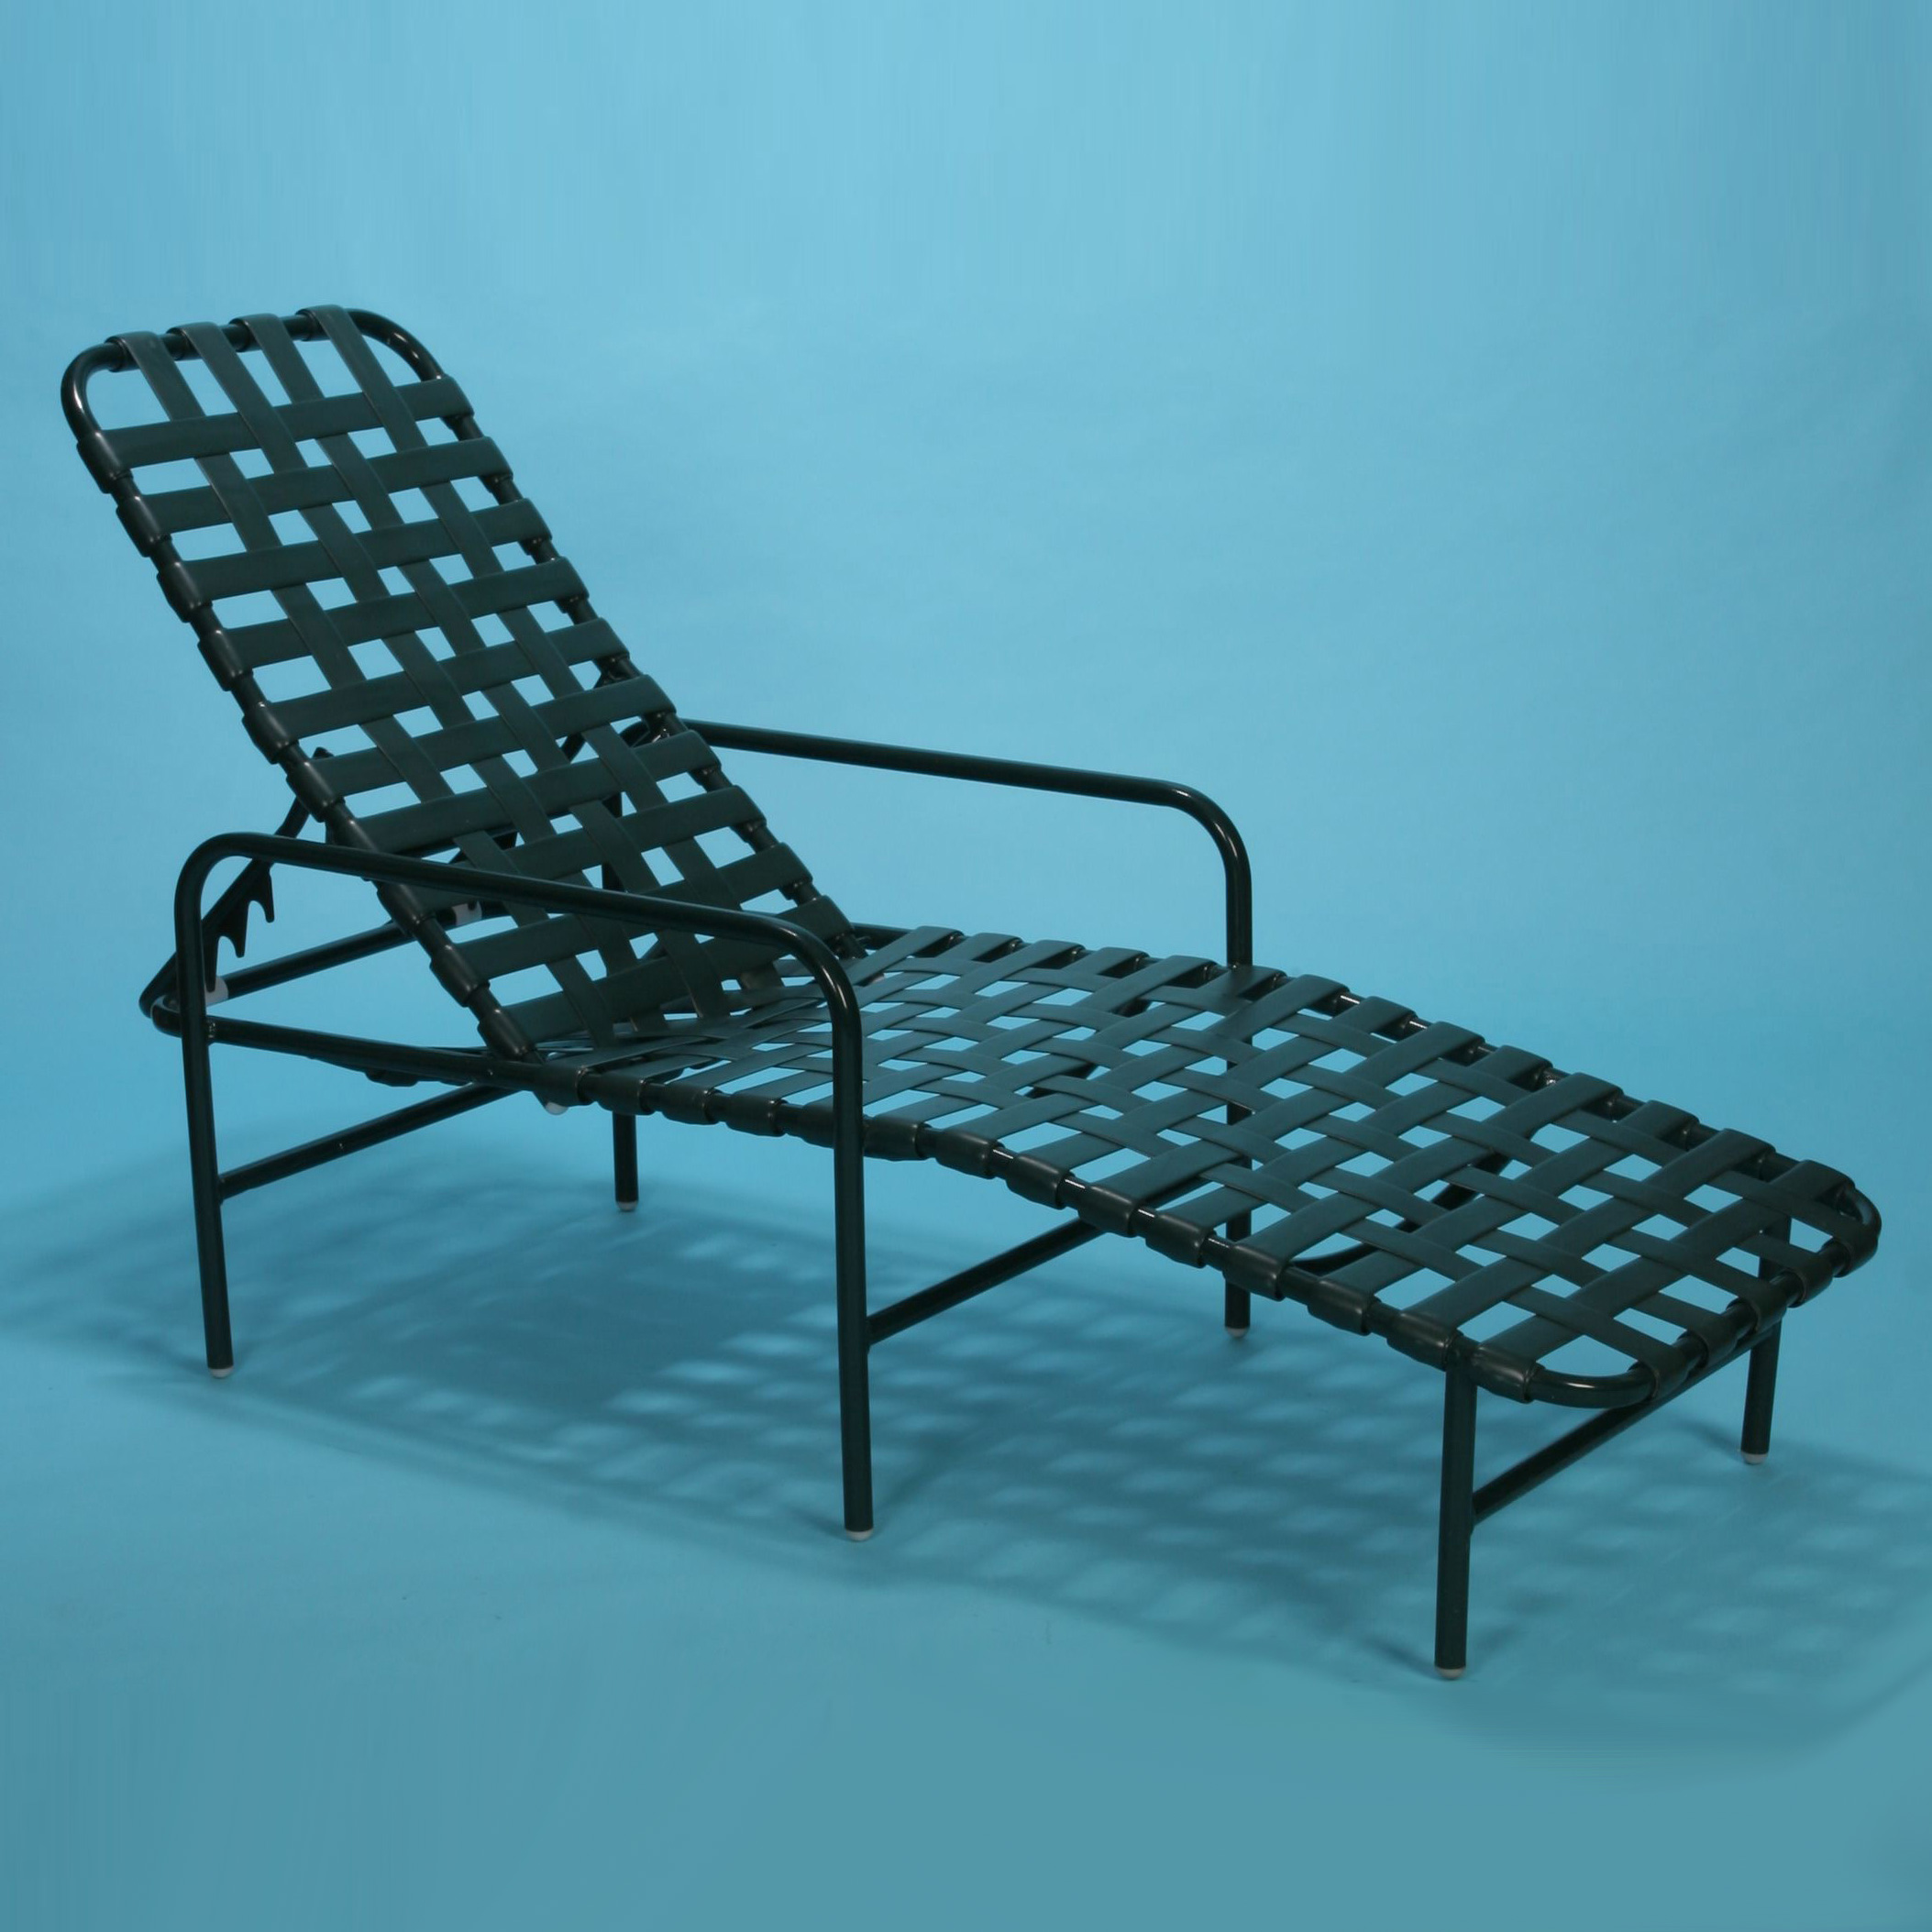 J 150 Strap Line Commercial Grade Safety Rail Chaise